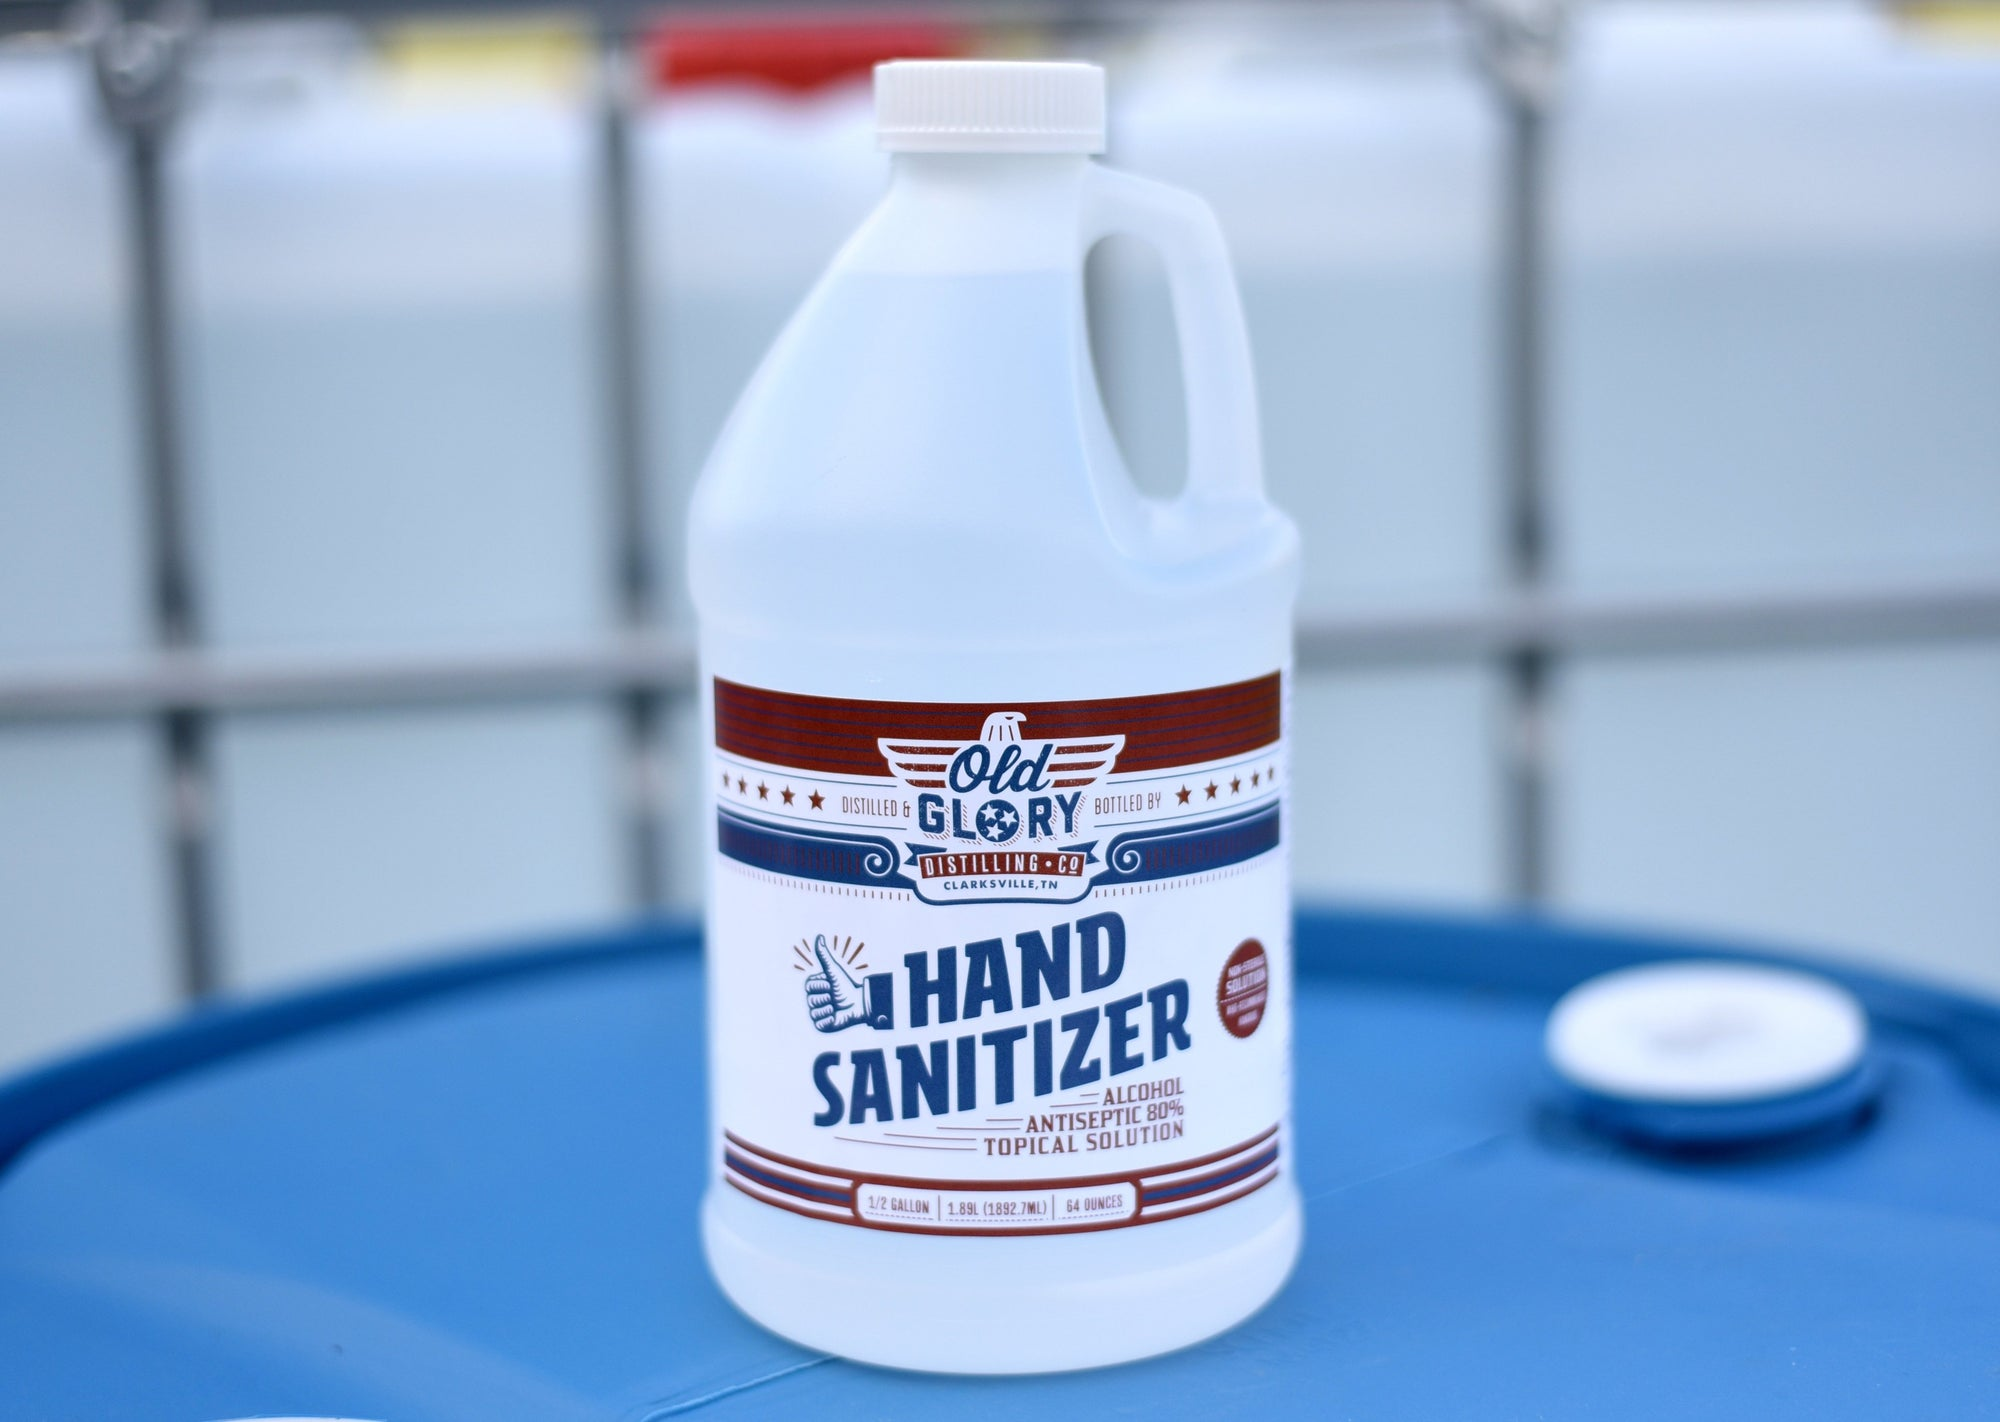 Old Glory Hand Sanitizer